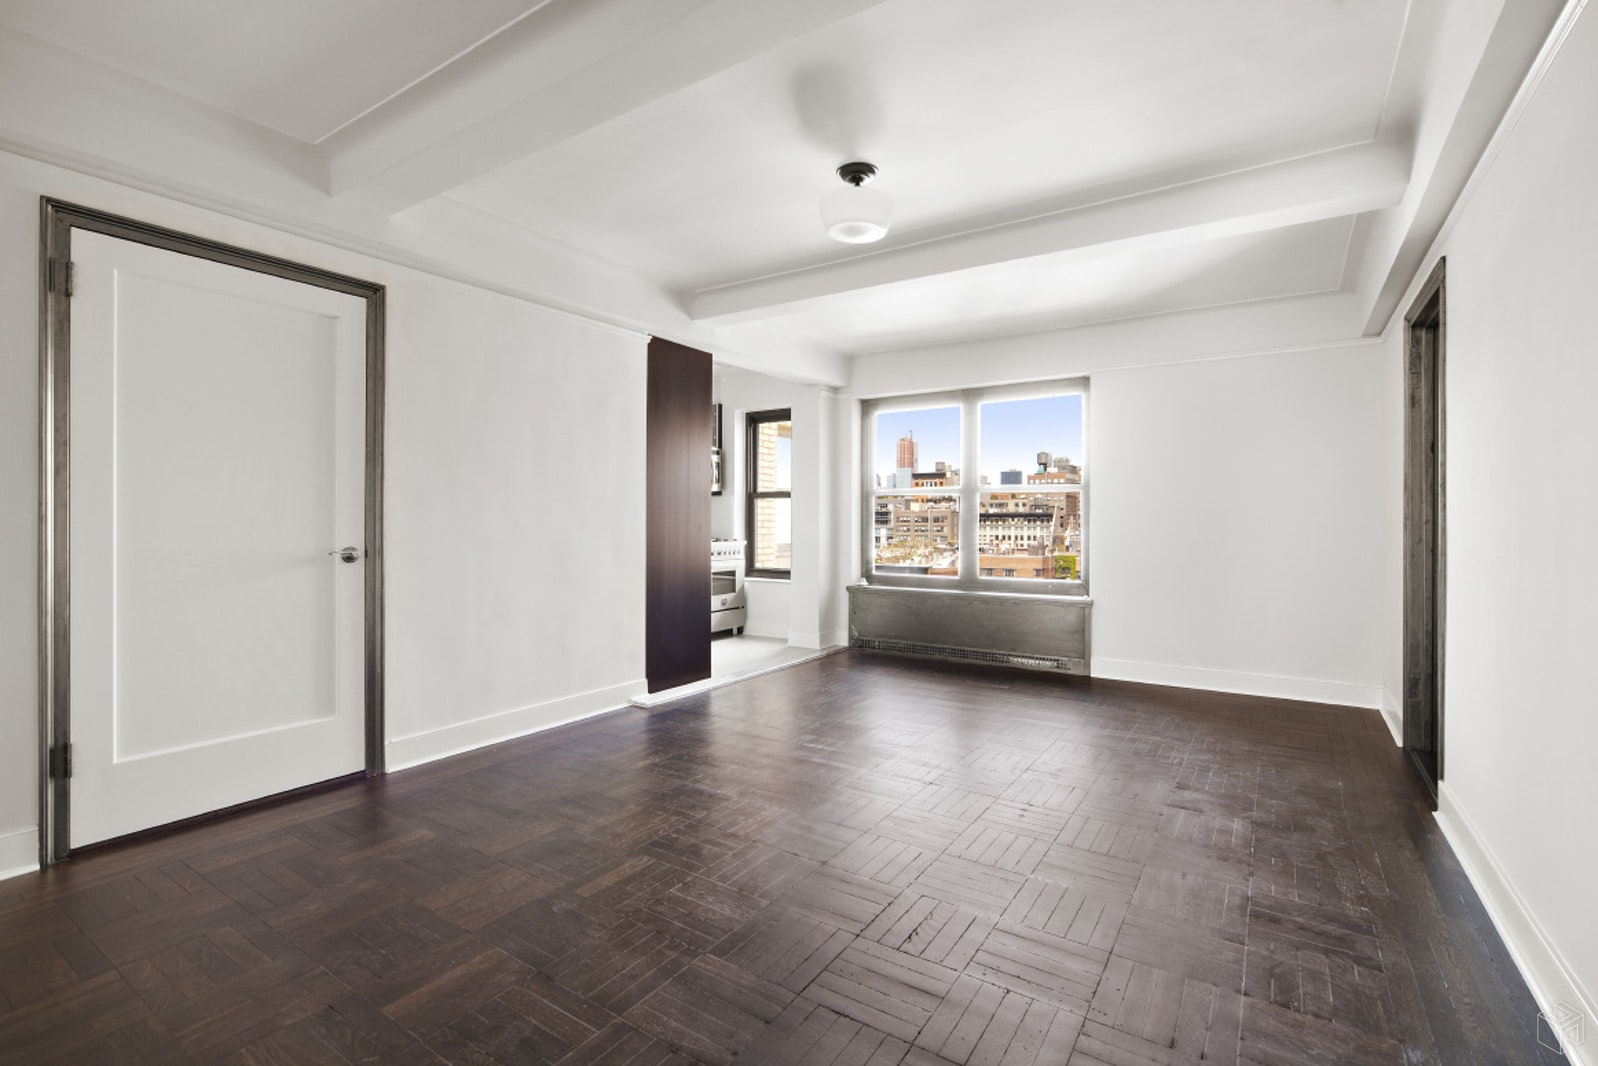 56 Seventh Avenue 10g, West Village, NYC, 10011, Price Not Disclosed, Rented Property, Halstead Real Estate, Photo 1